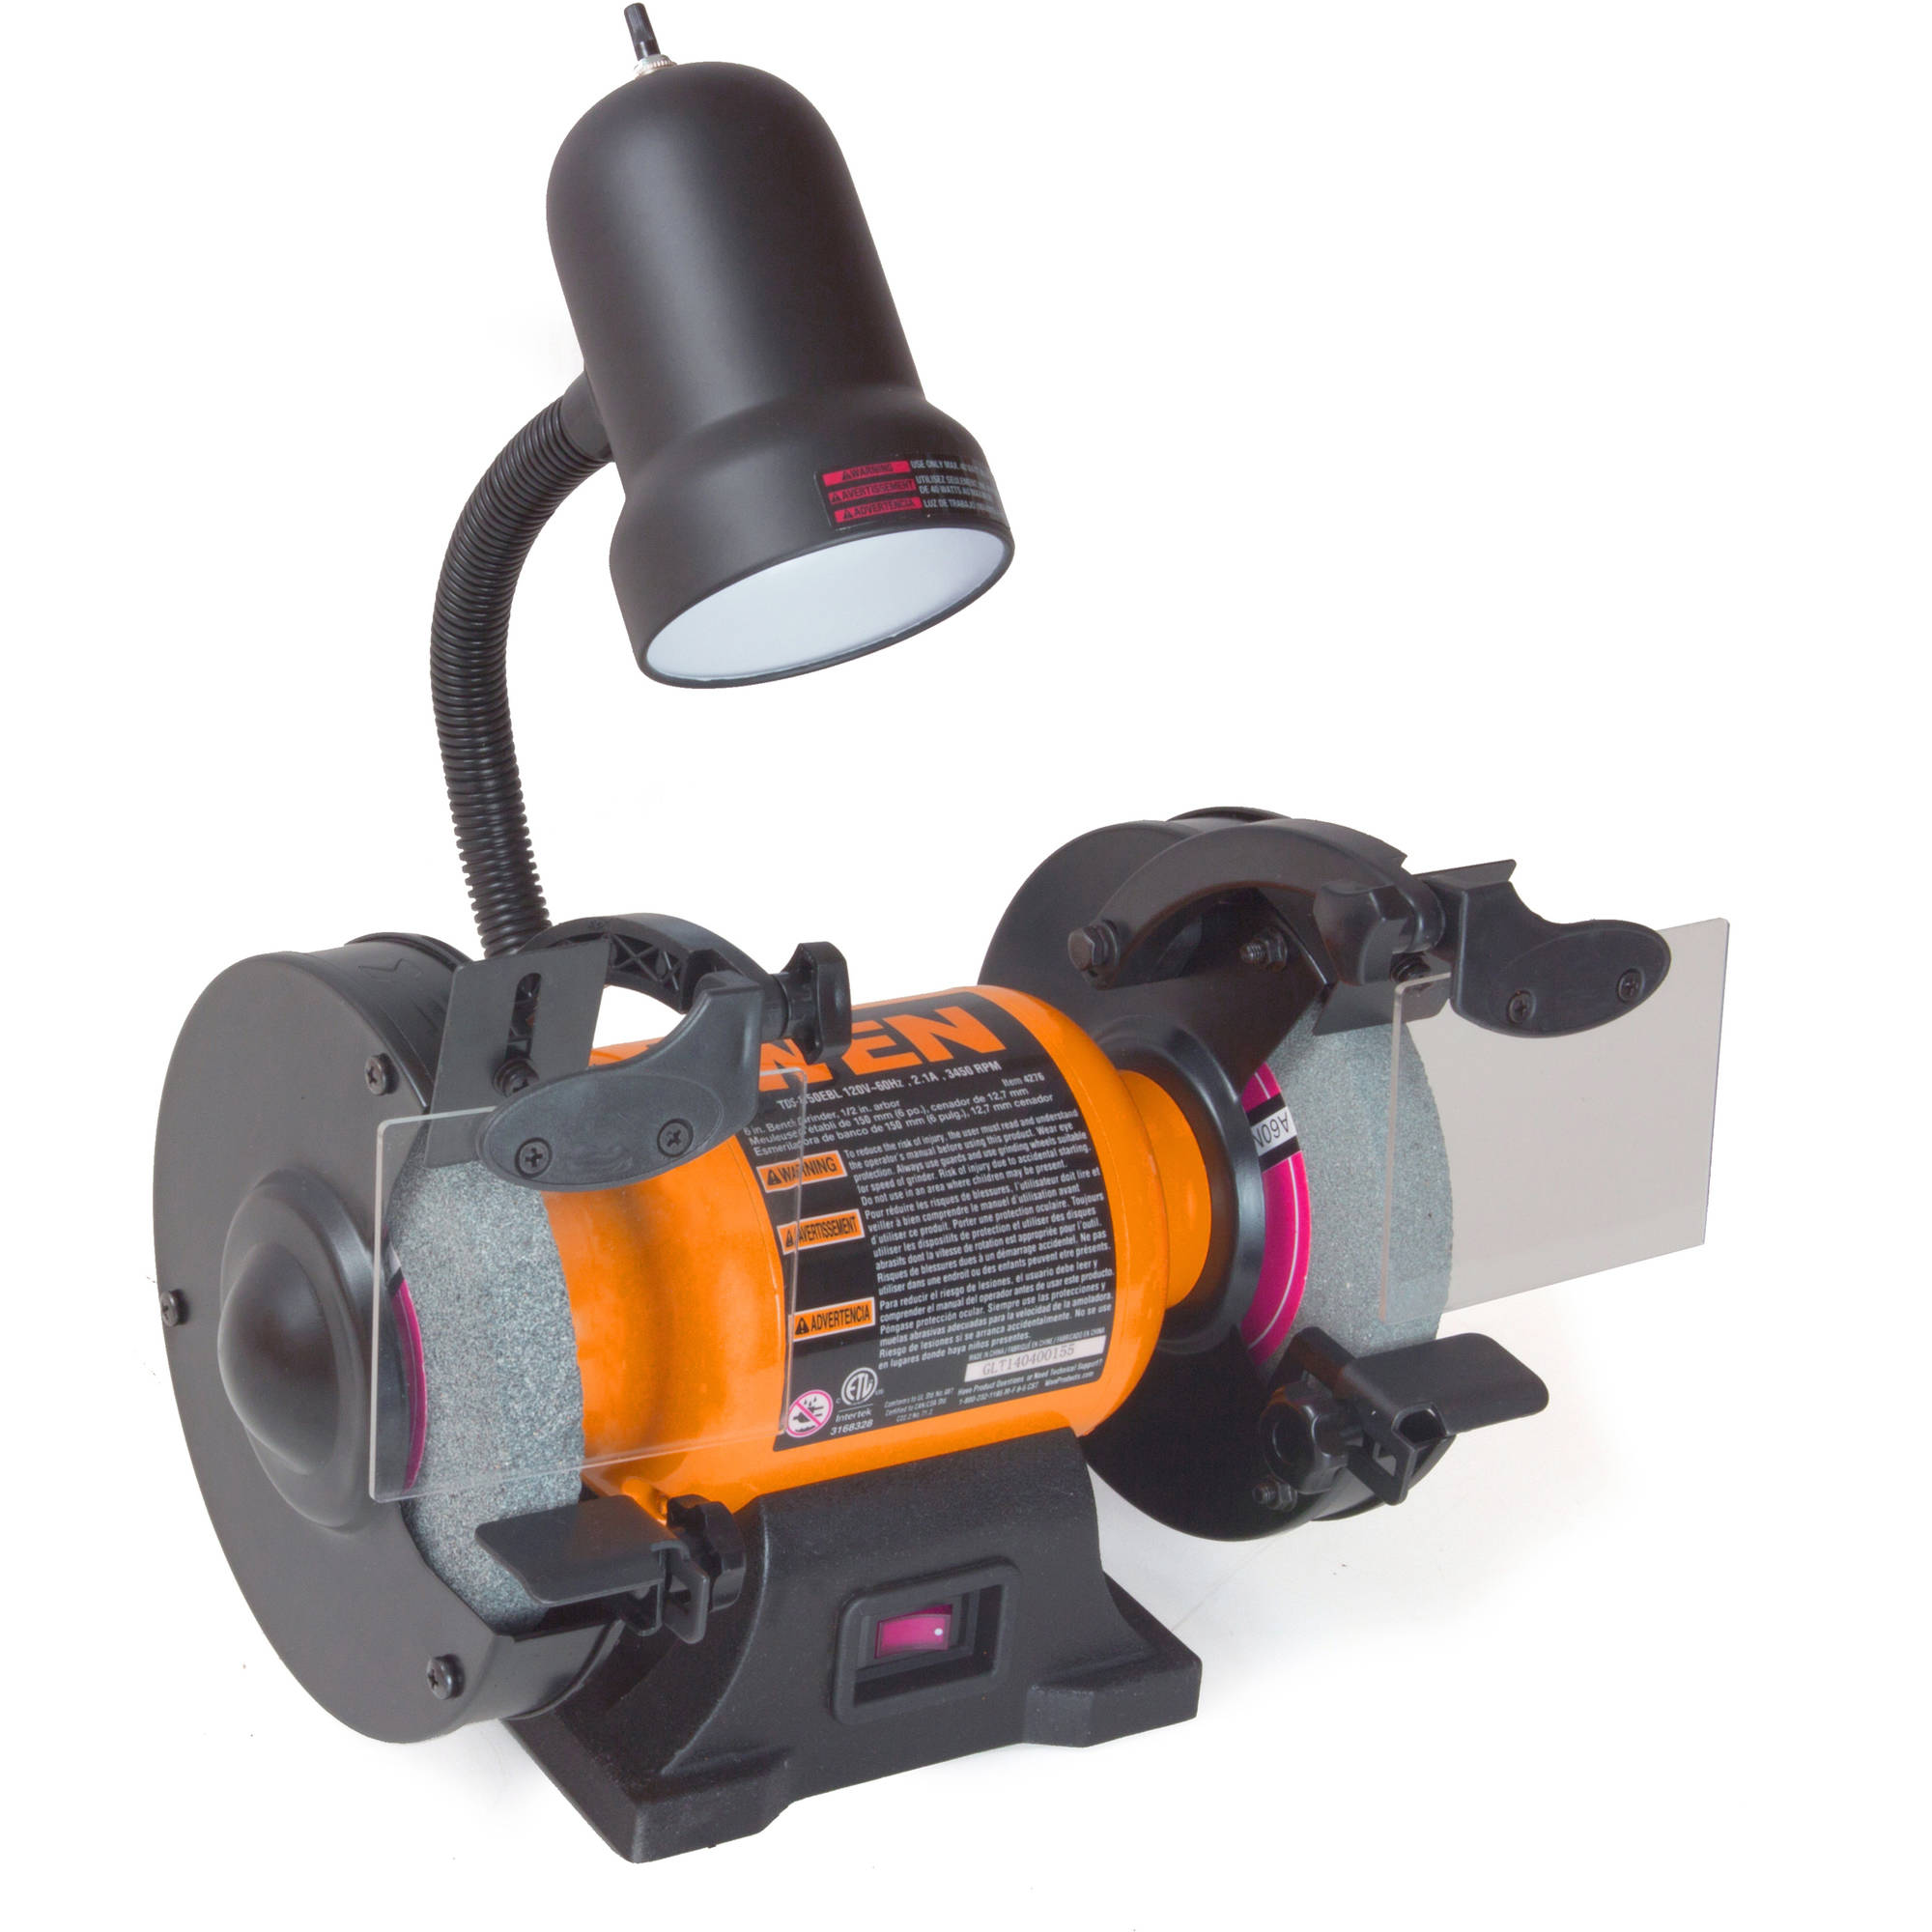 WEN 2.1-Amp 6-Inch Bench Grinder with Flexible Work Light